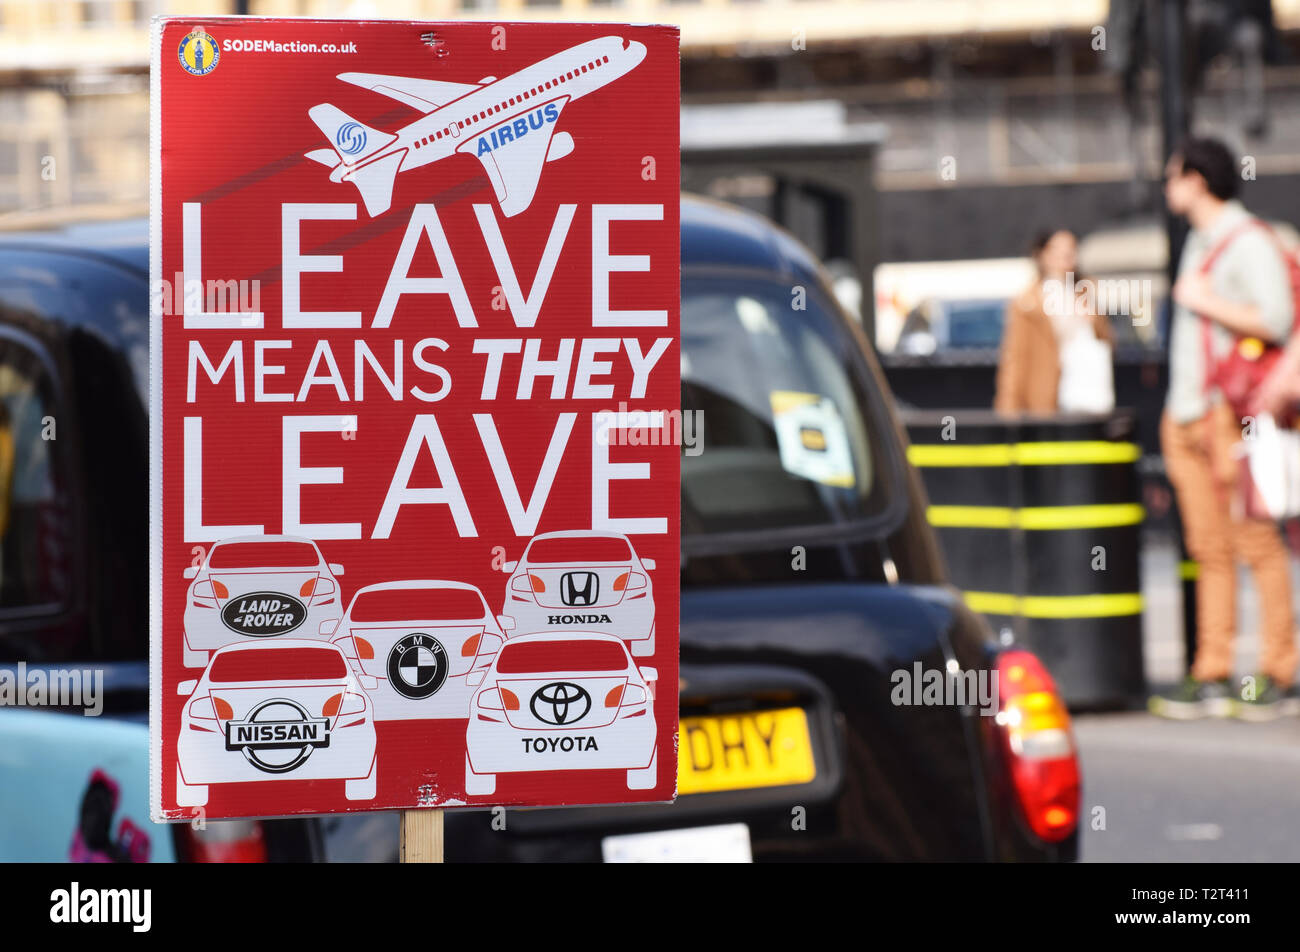 Anti Brexit sign in Westminster London UK stating that if the UK leaves the EU large employers such as Air Bus, Honda, Nissan, BMW will leave the UK - Stock Image